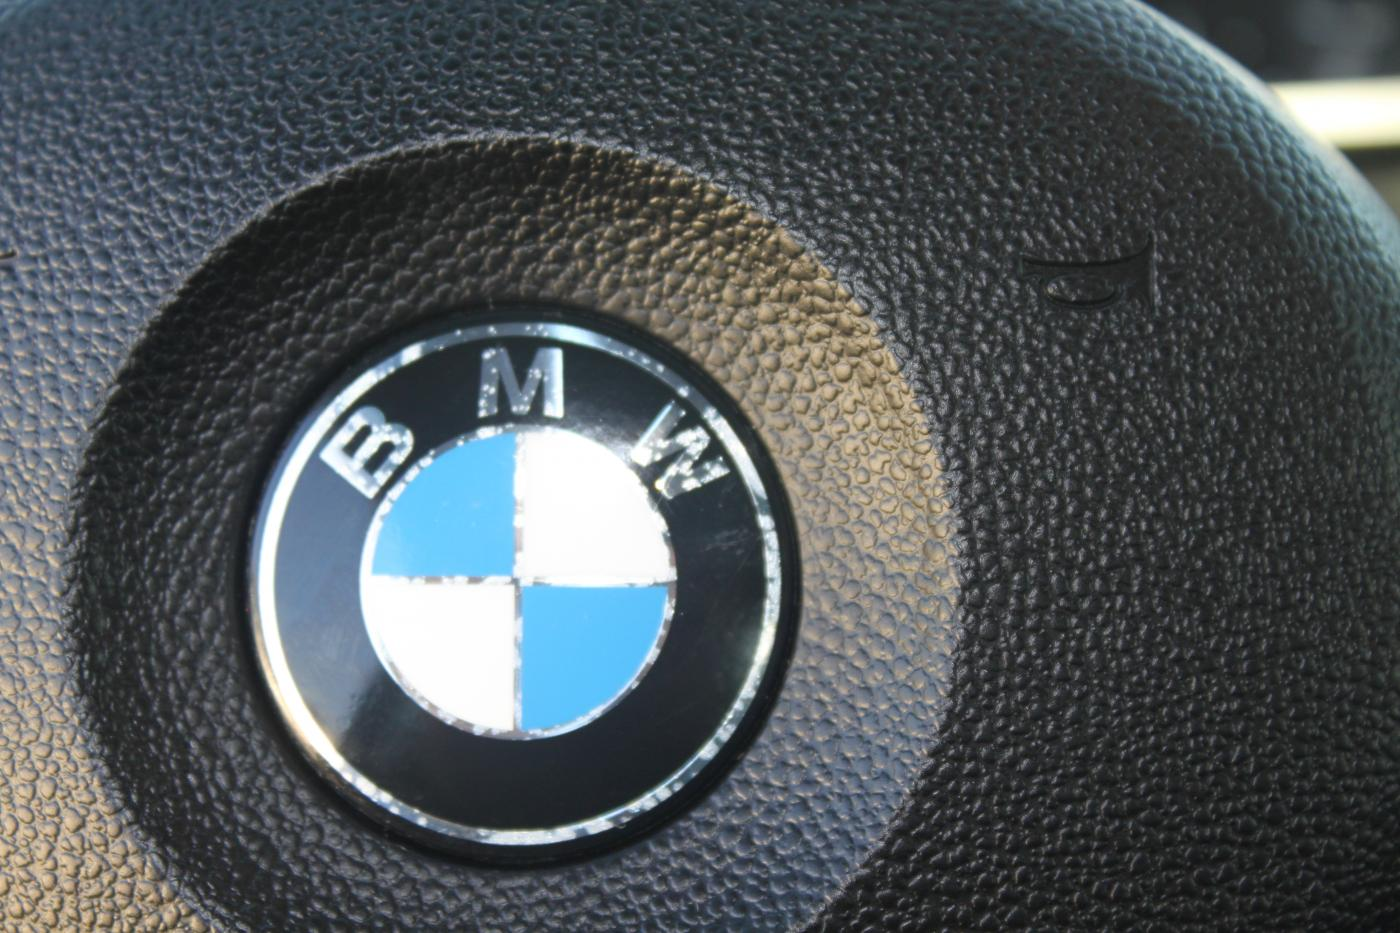 Bmw Steering Wheel Emblem Defect